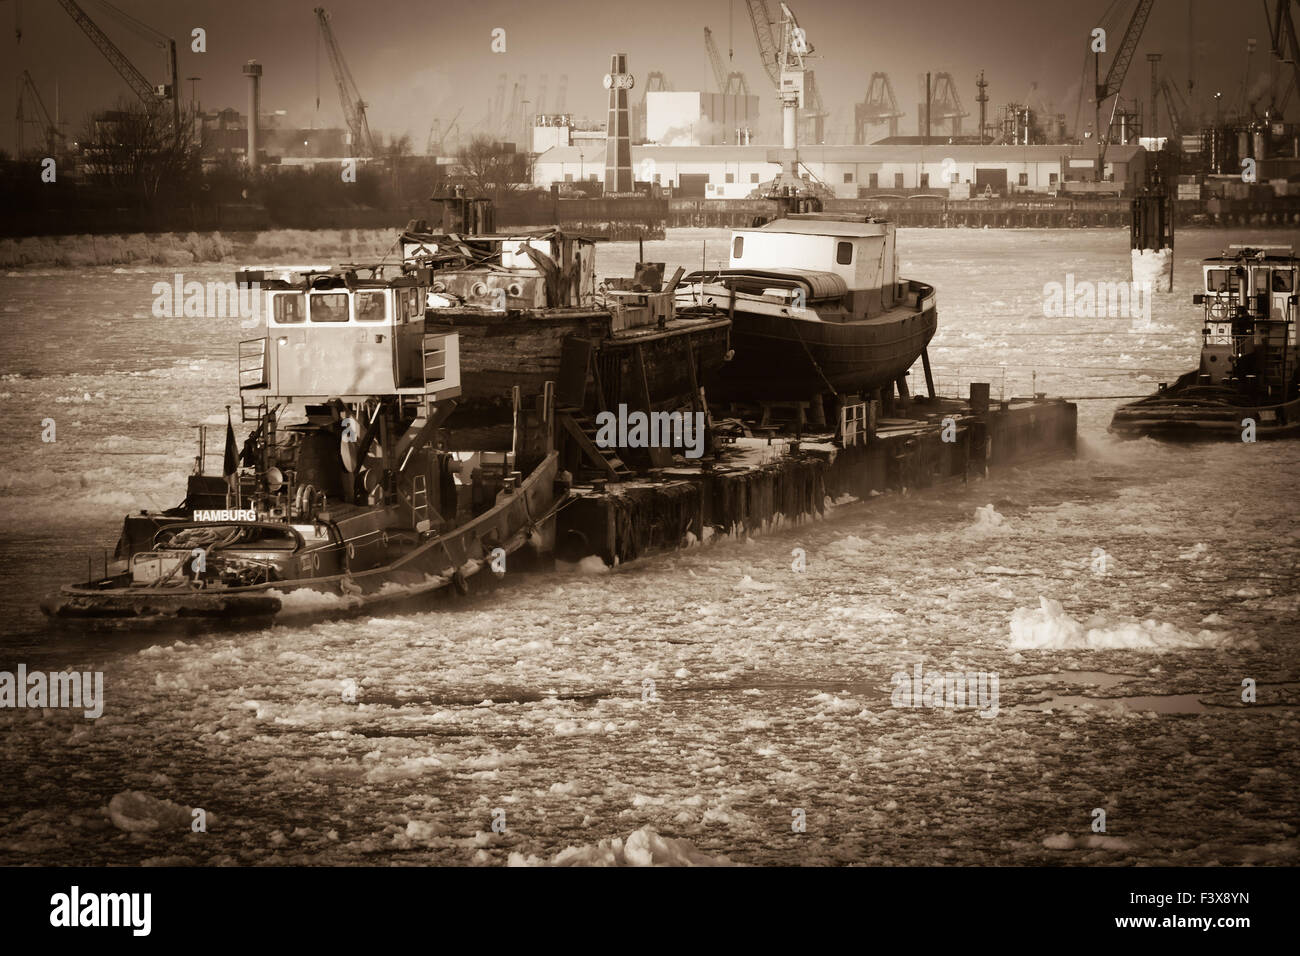 Hamburg harbor in winter - Stock Image